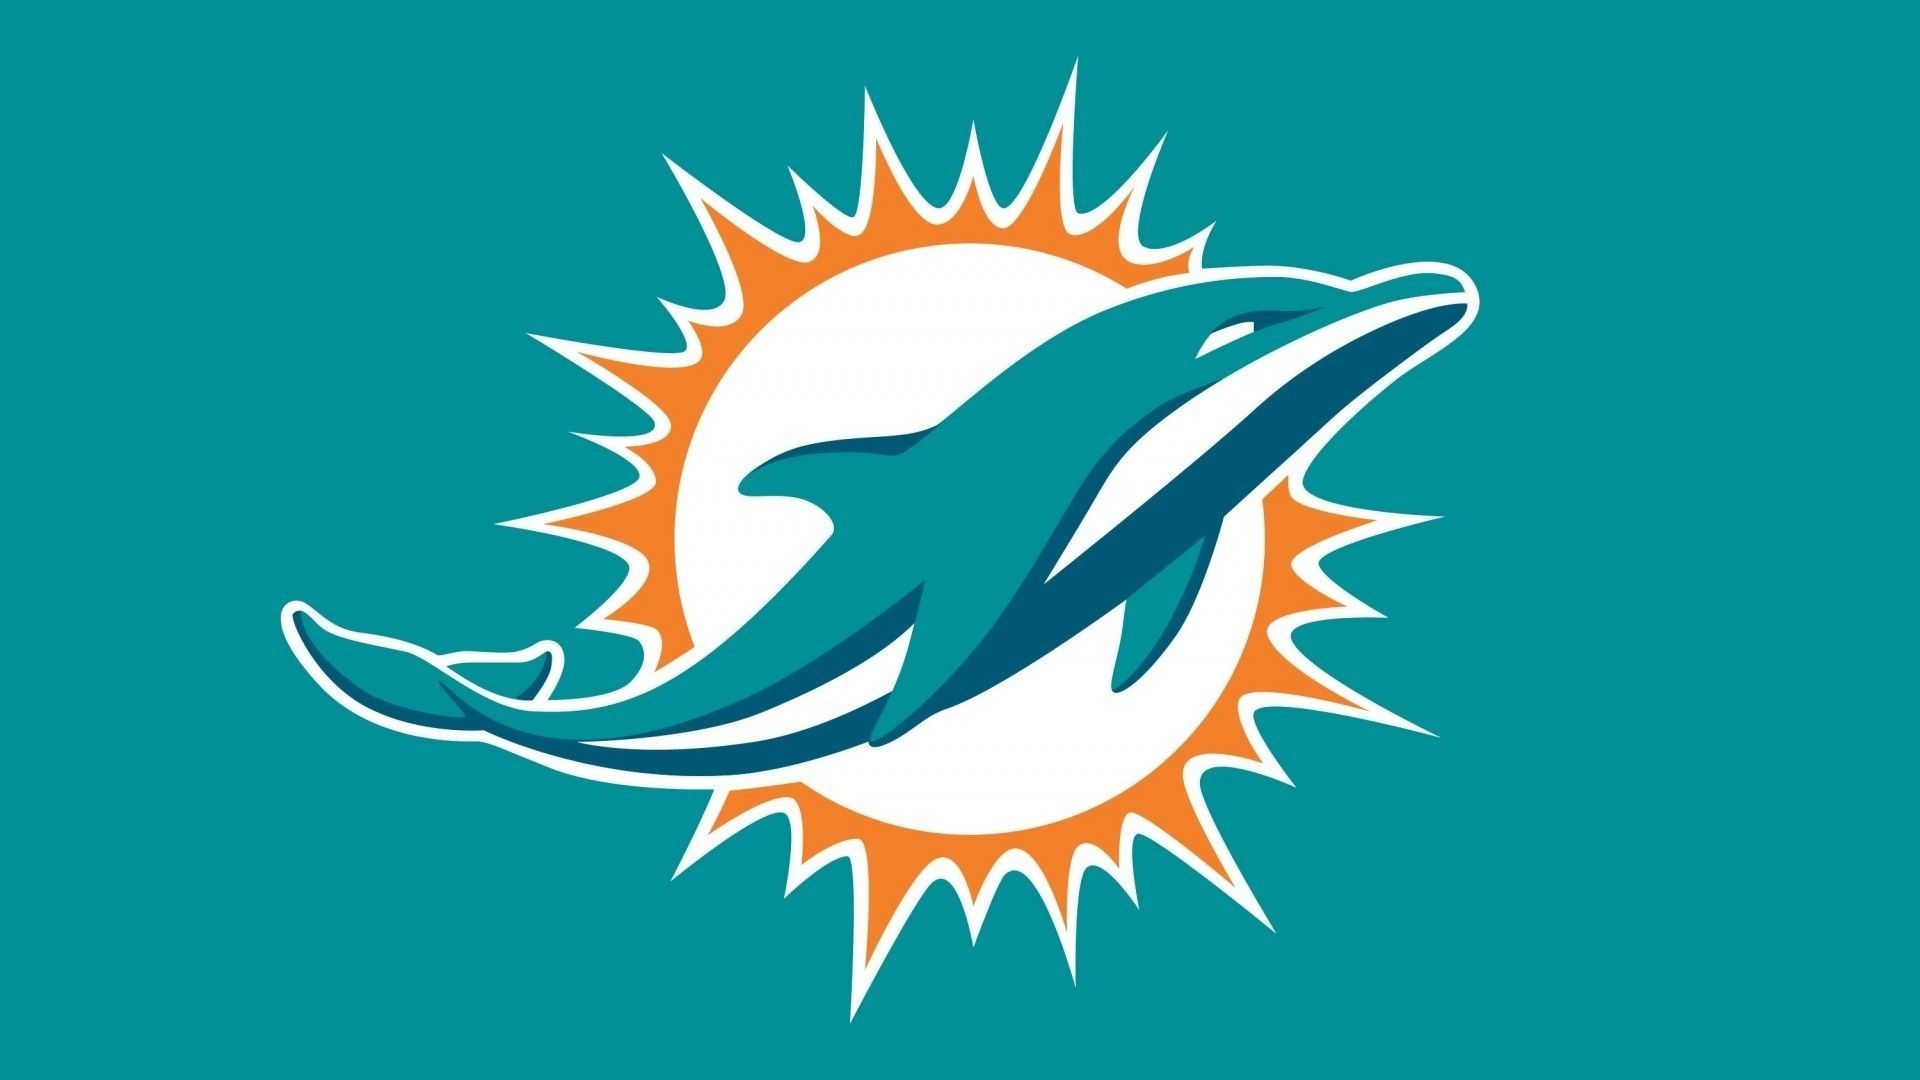 Miami Dolphins Wallpapers Top Free Miami Dolphins Backgrounds